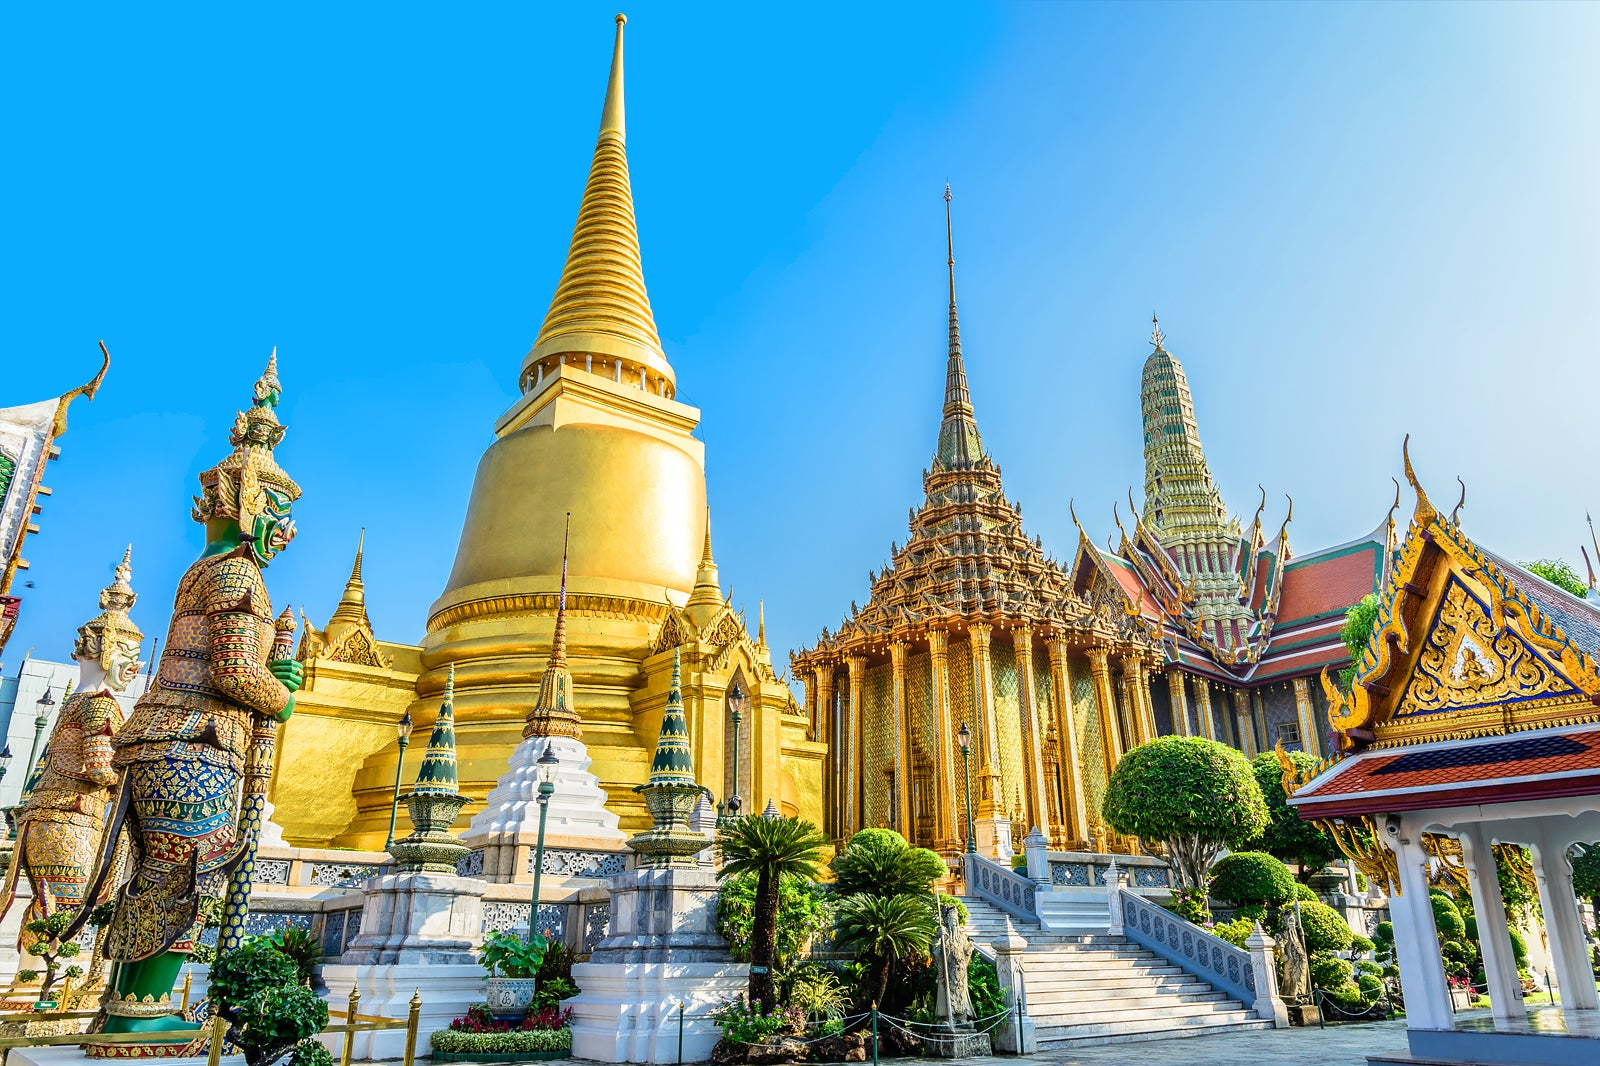 Bangkok Weather - When is the Best Time to Go to Bangkok?